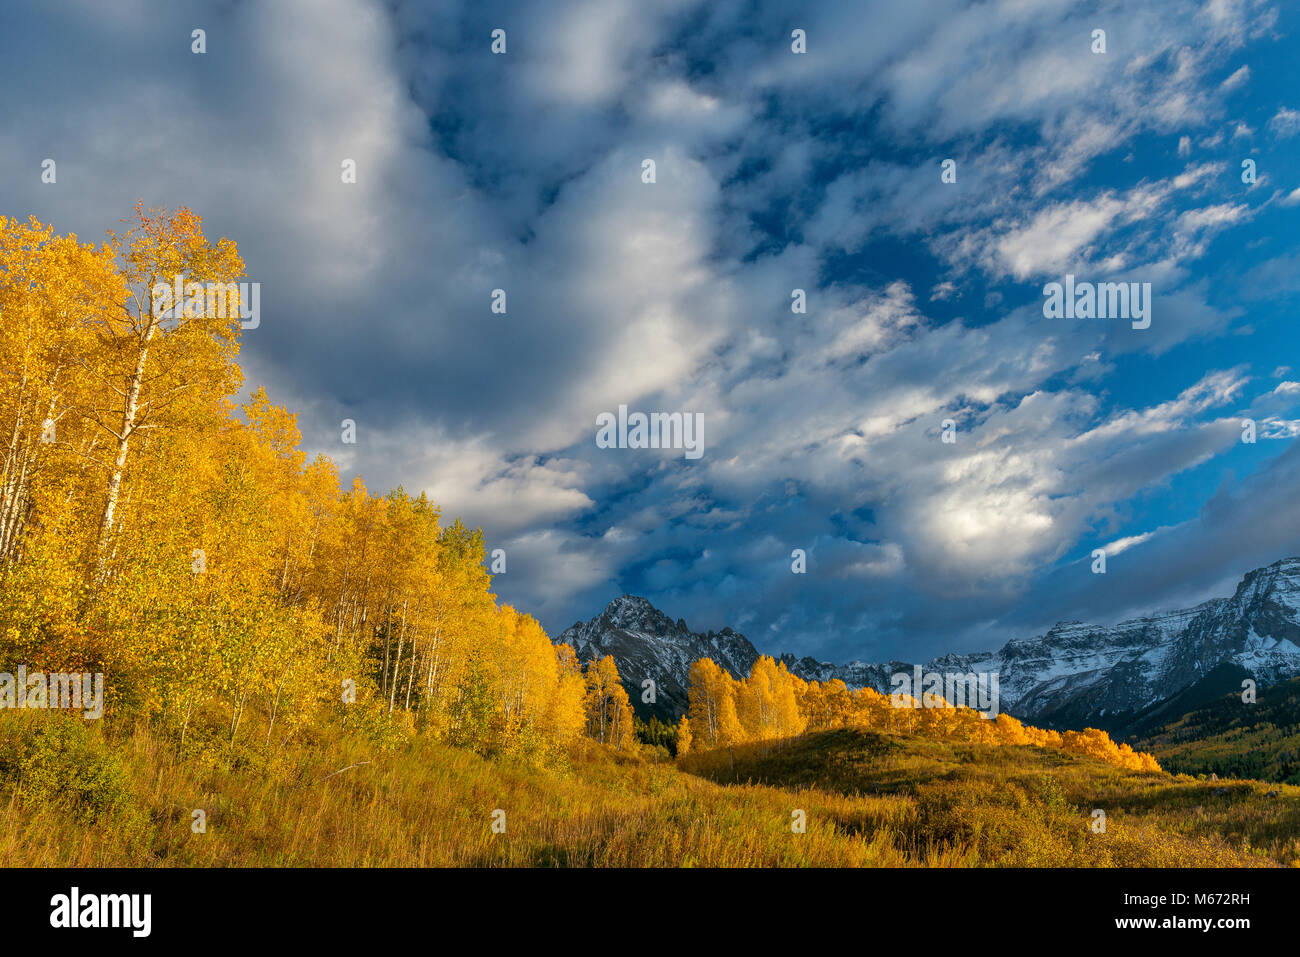 Aspen, Mount Sneffels, Dallas Divide, Uncompahgre National Forest, Colorado - Stock Image